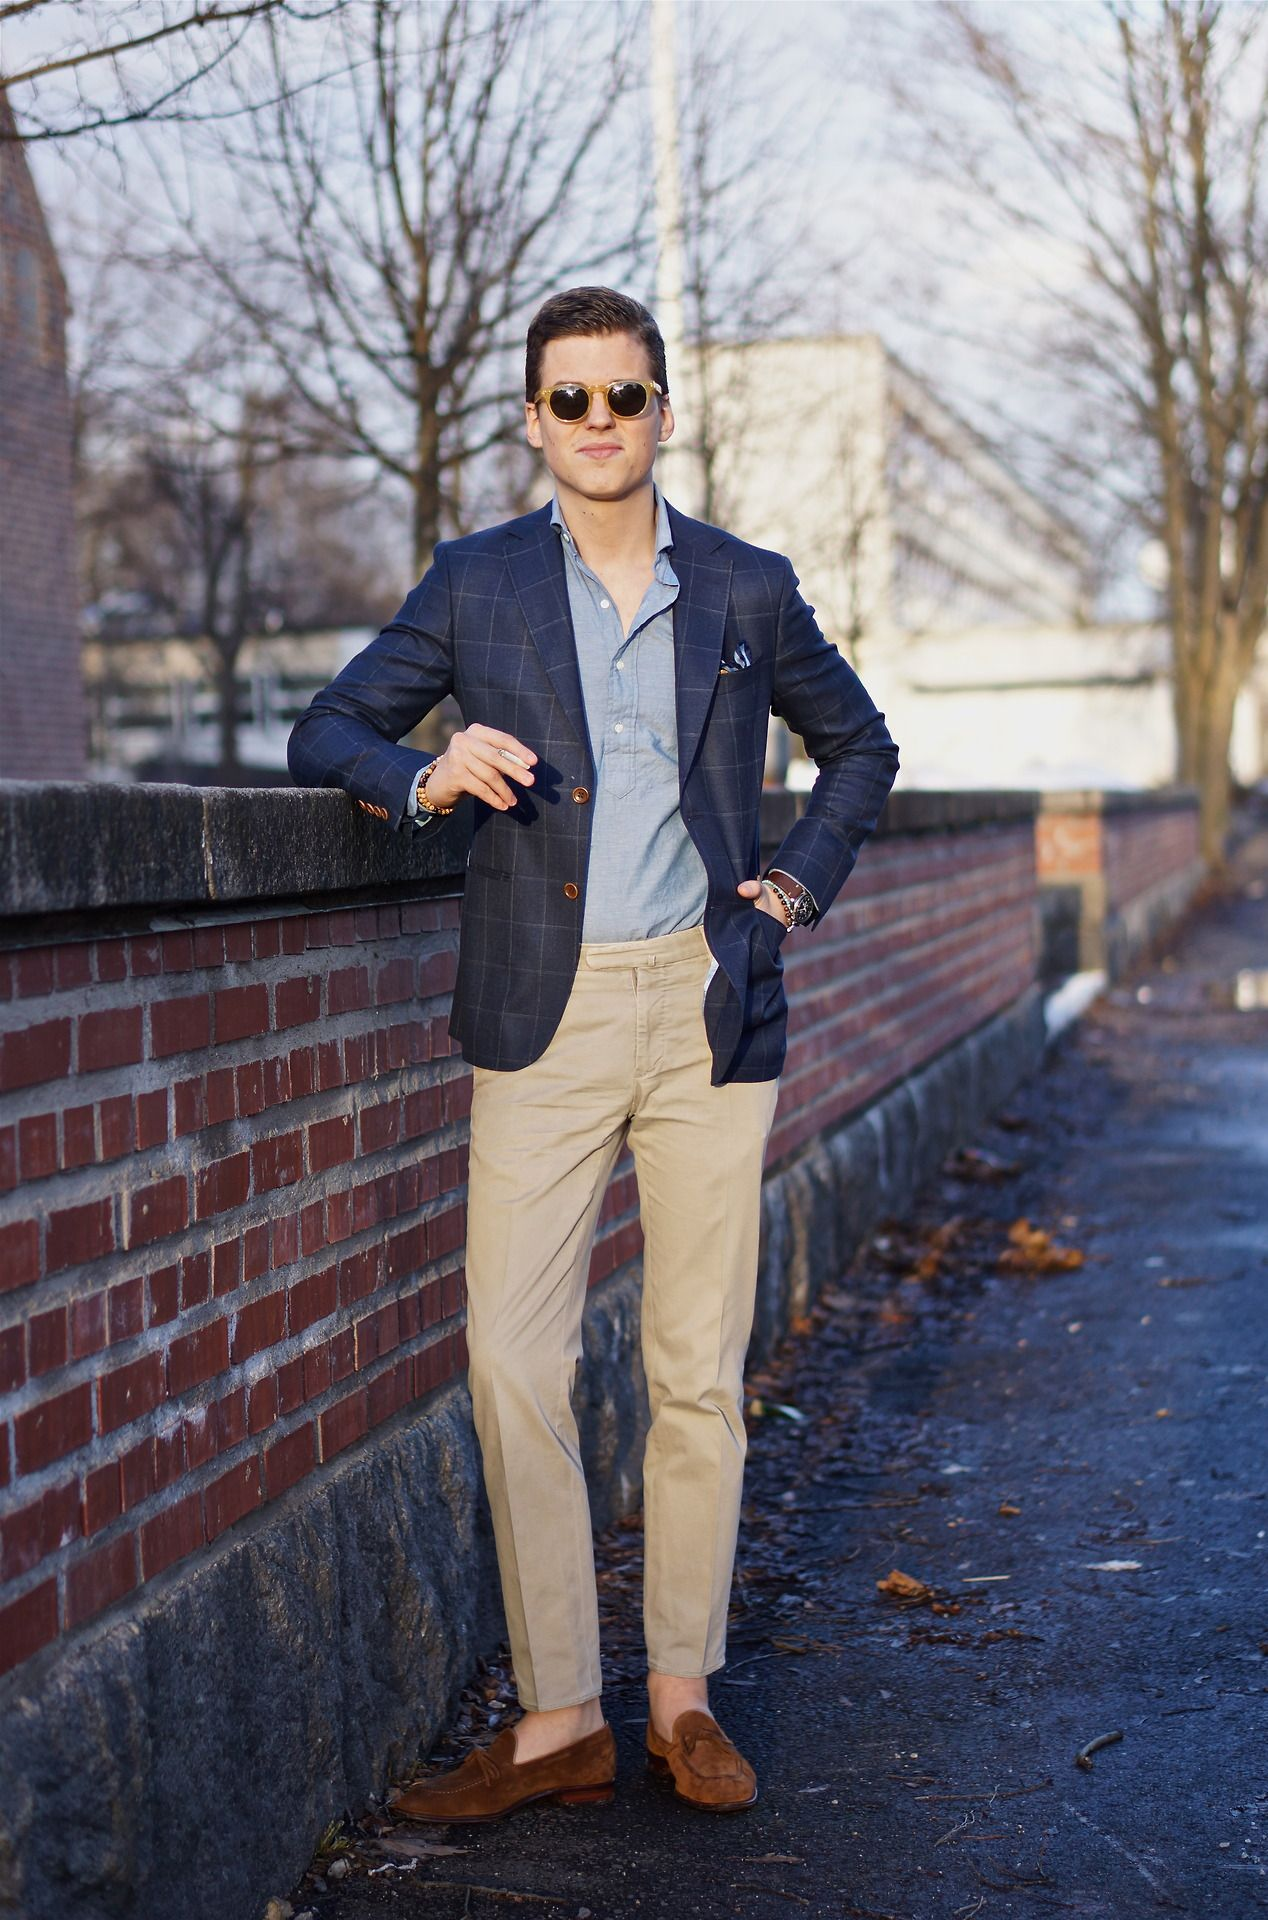 What color shoes to wear with dark blue dress pants